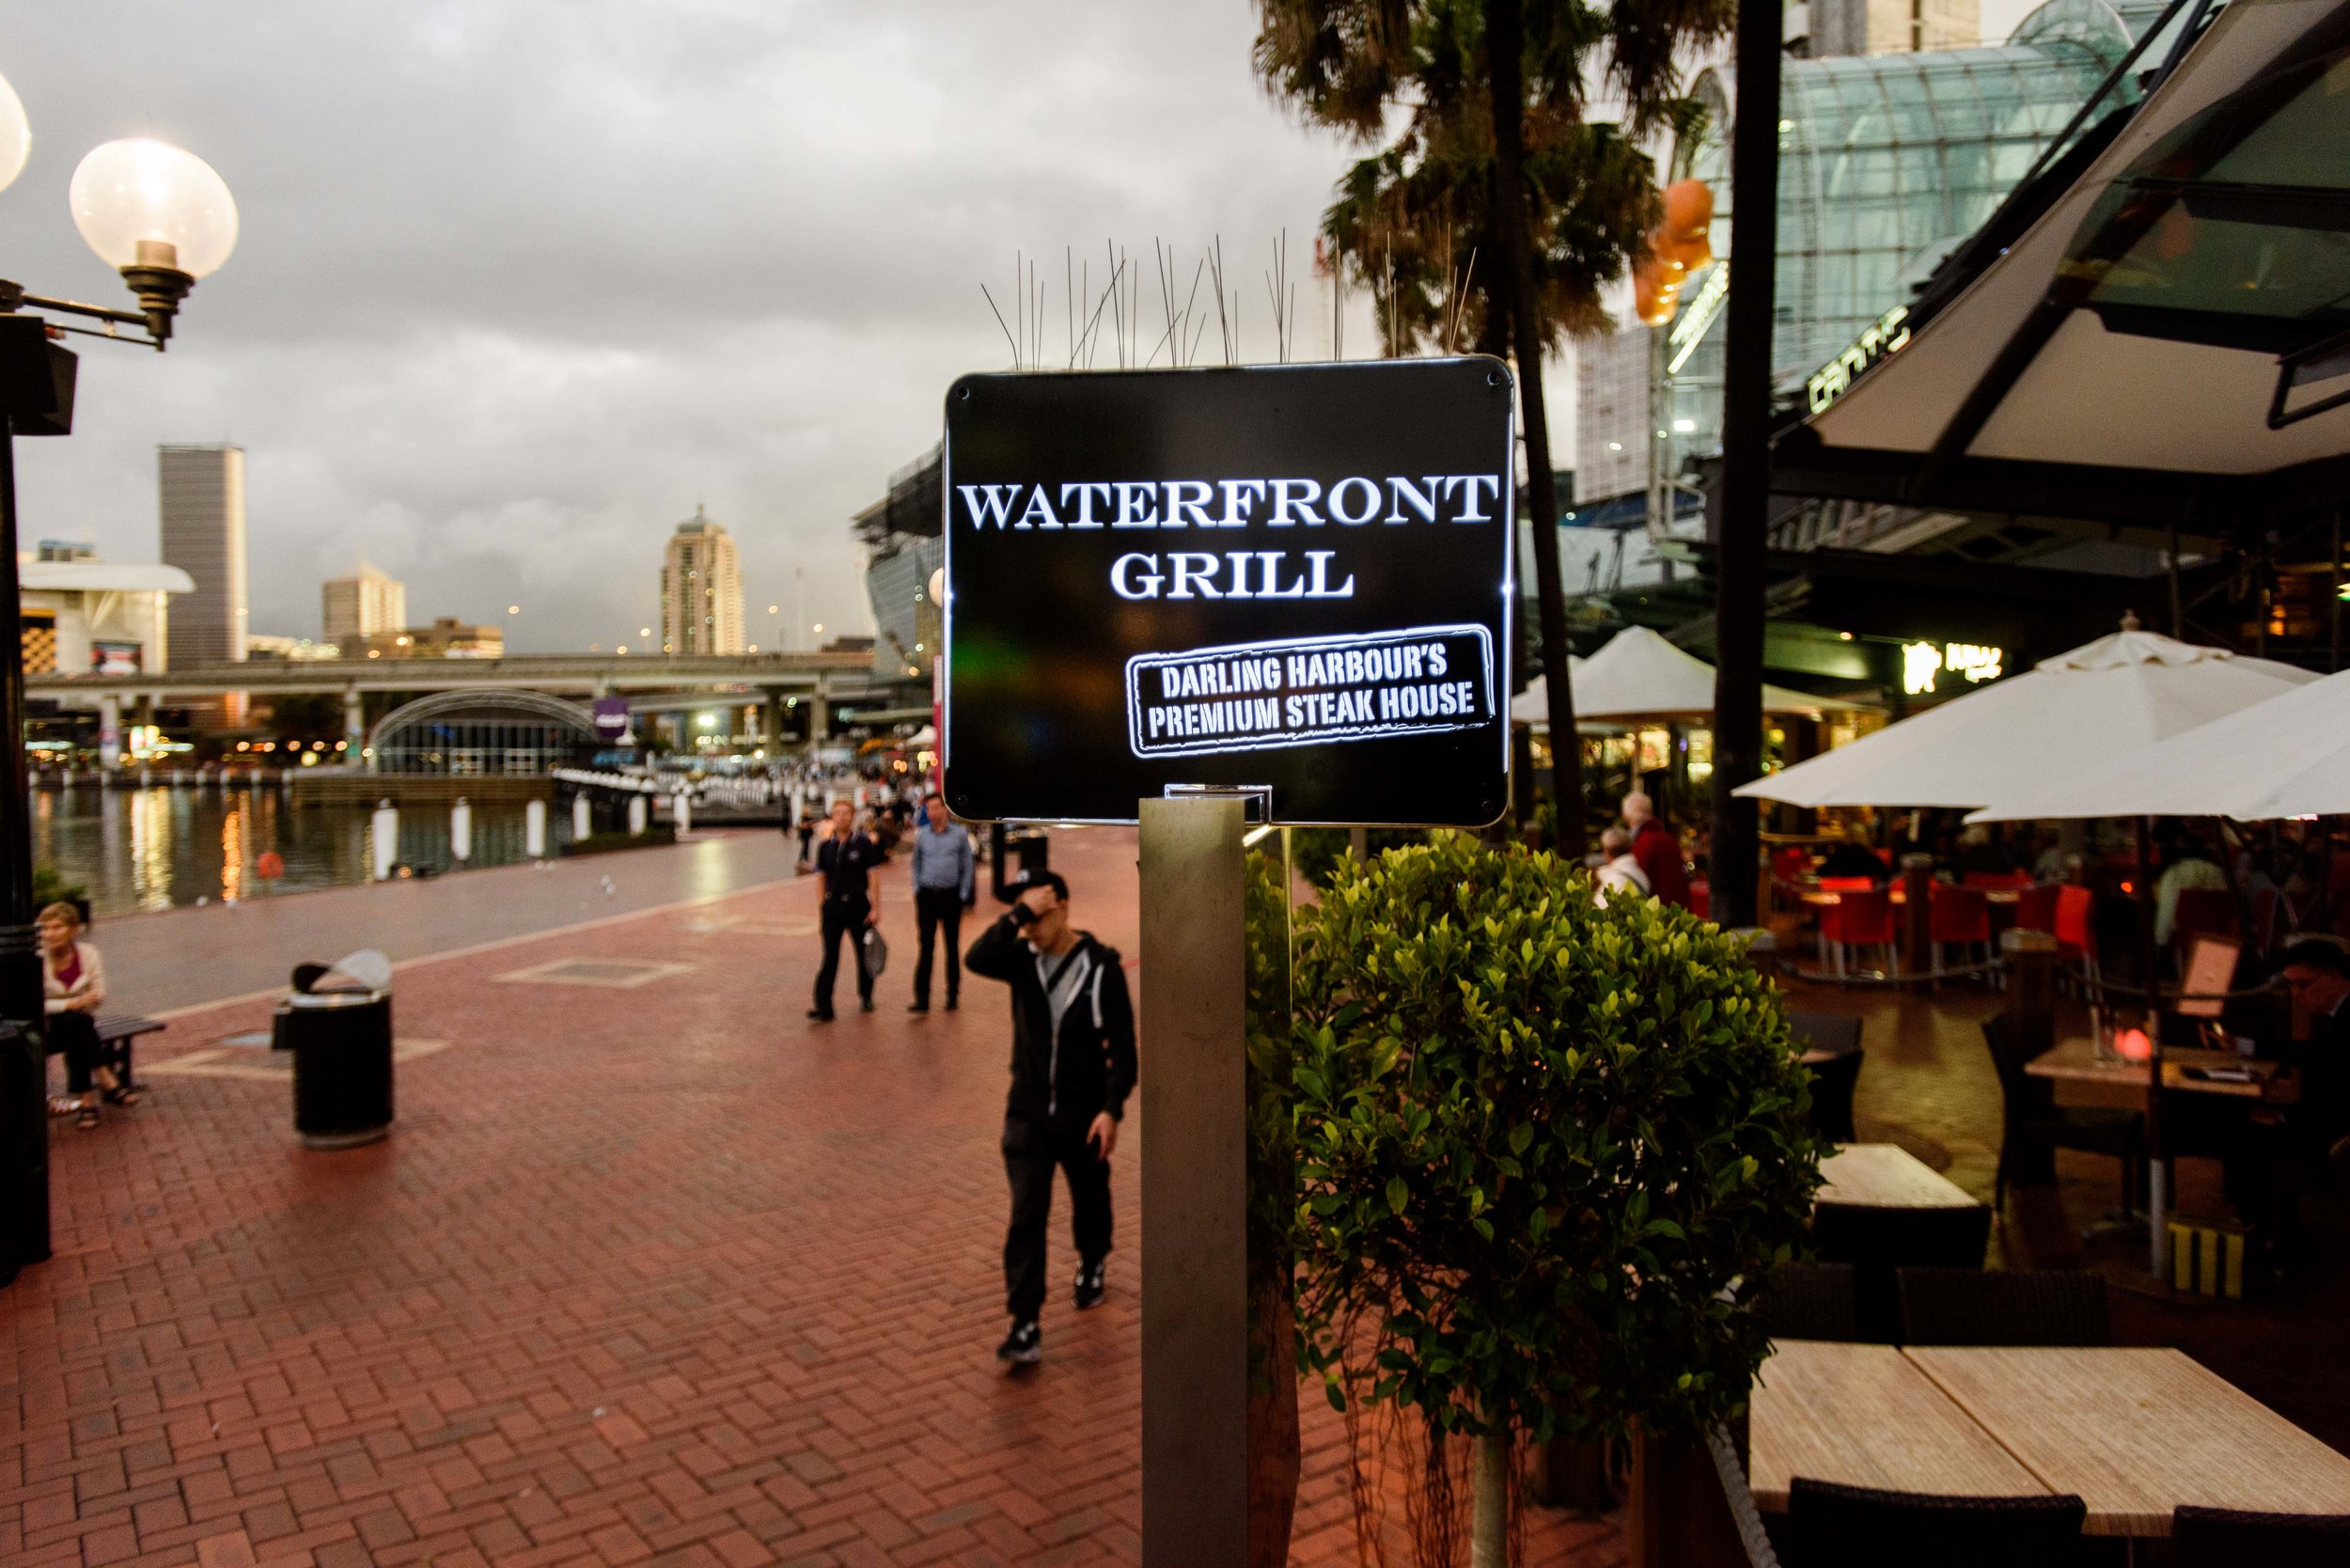 Waterfront-Grill-Venue-Feature.jpg